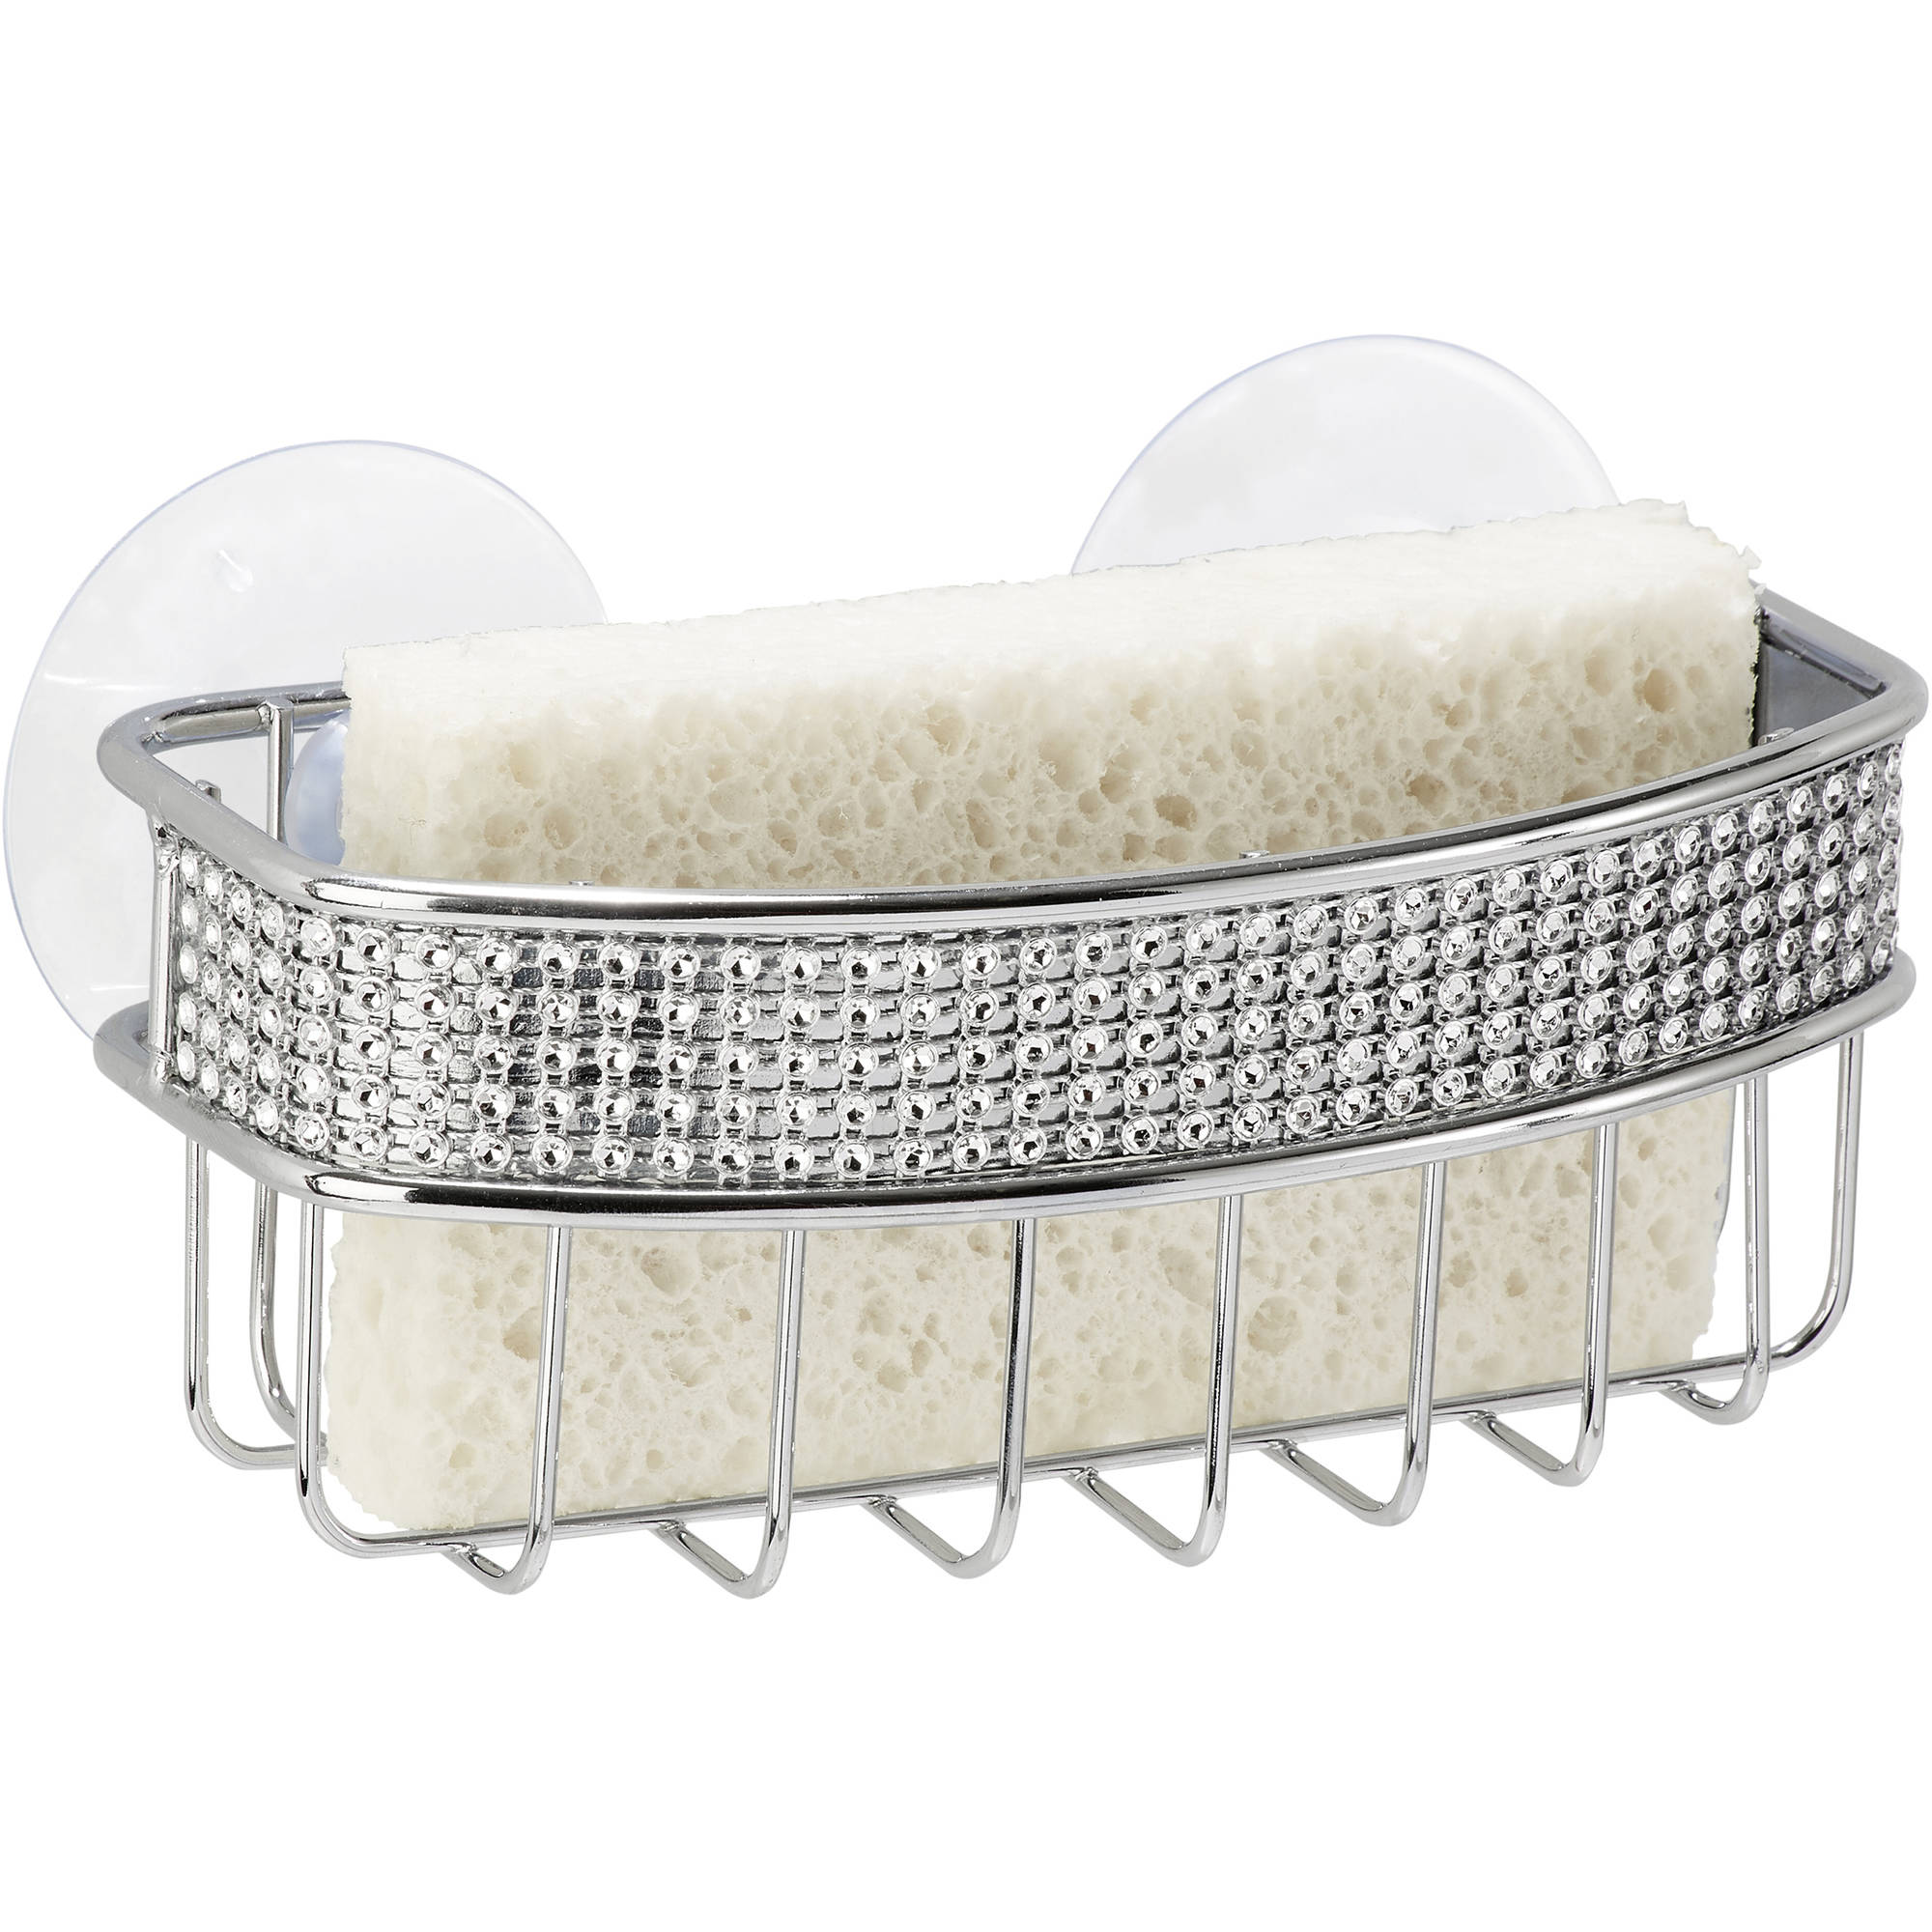 Simplify Sponge Holder with 2 Suction Cups, Chrome Pave Diamond Design